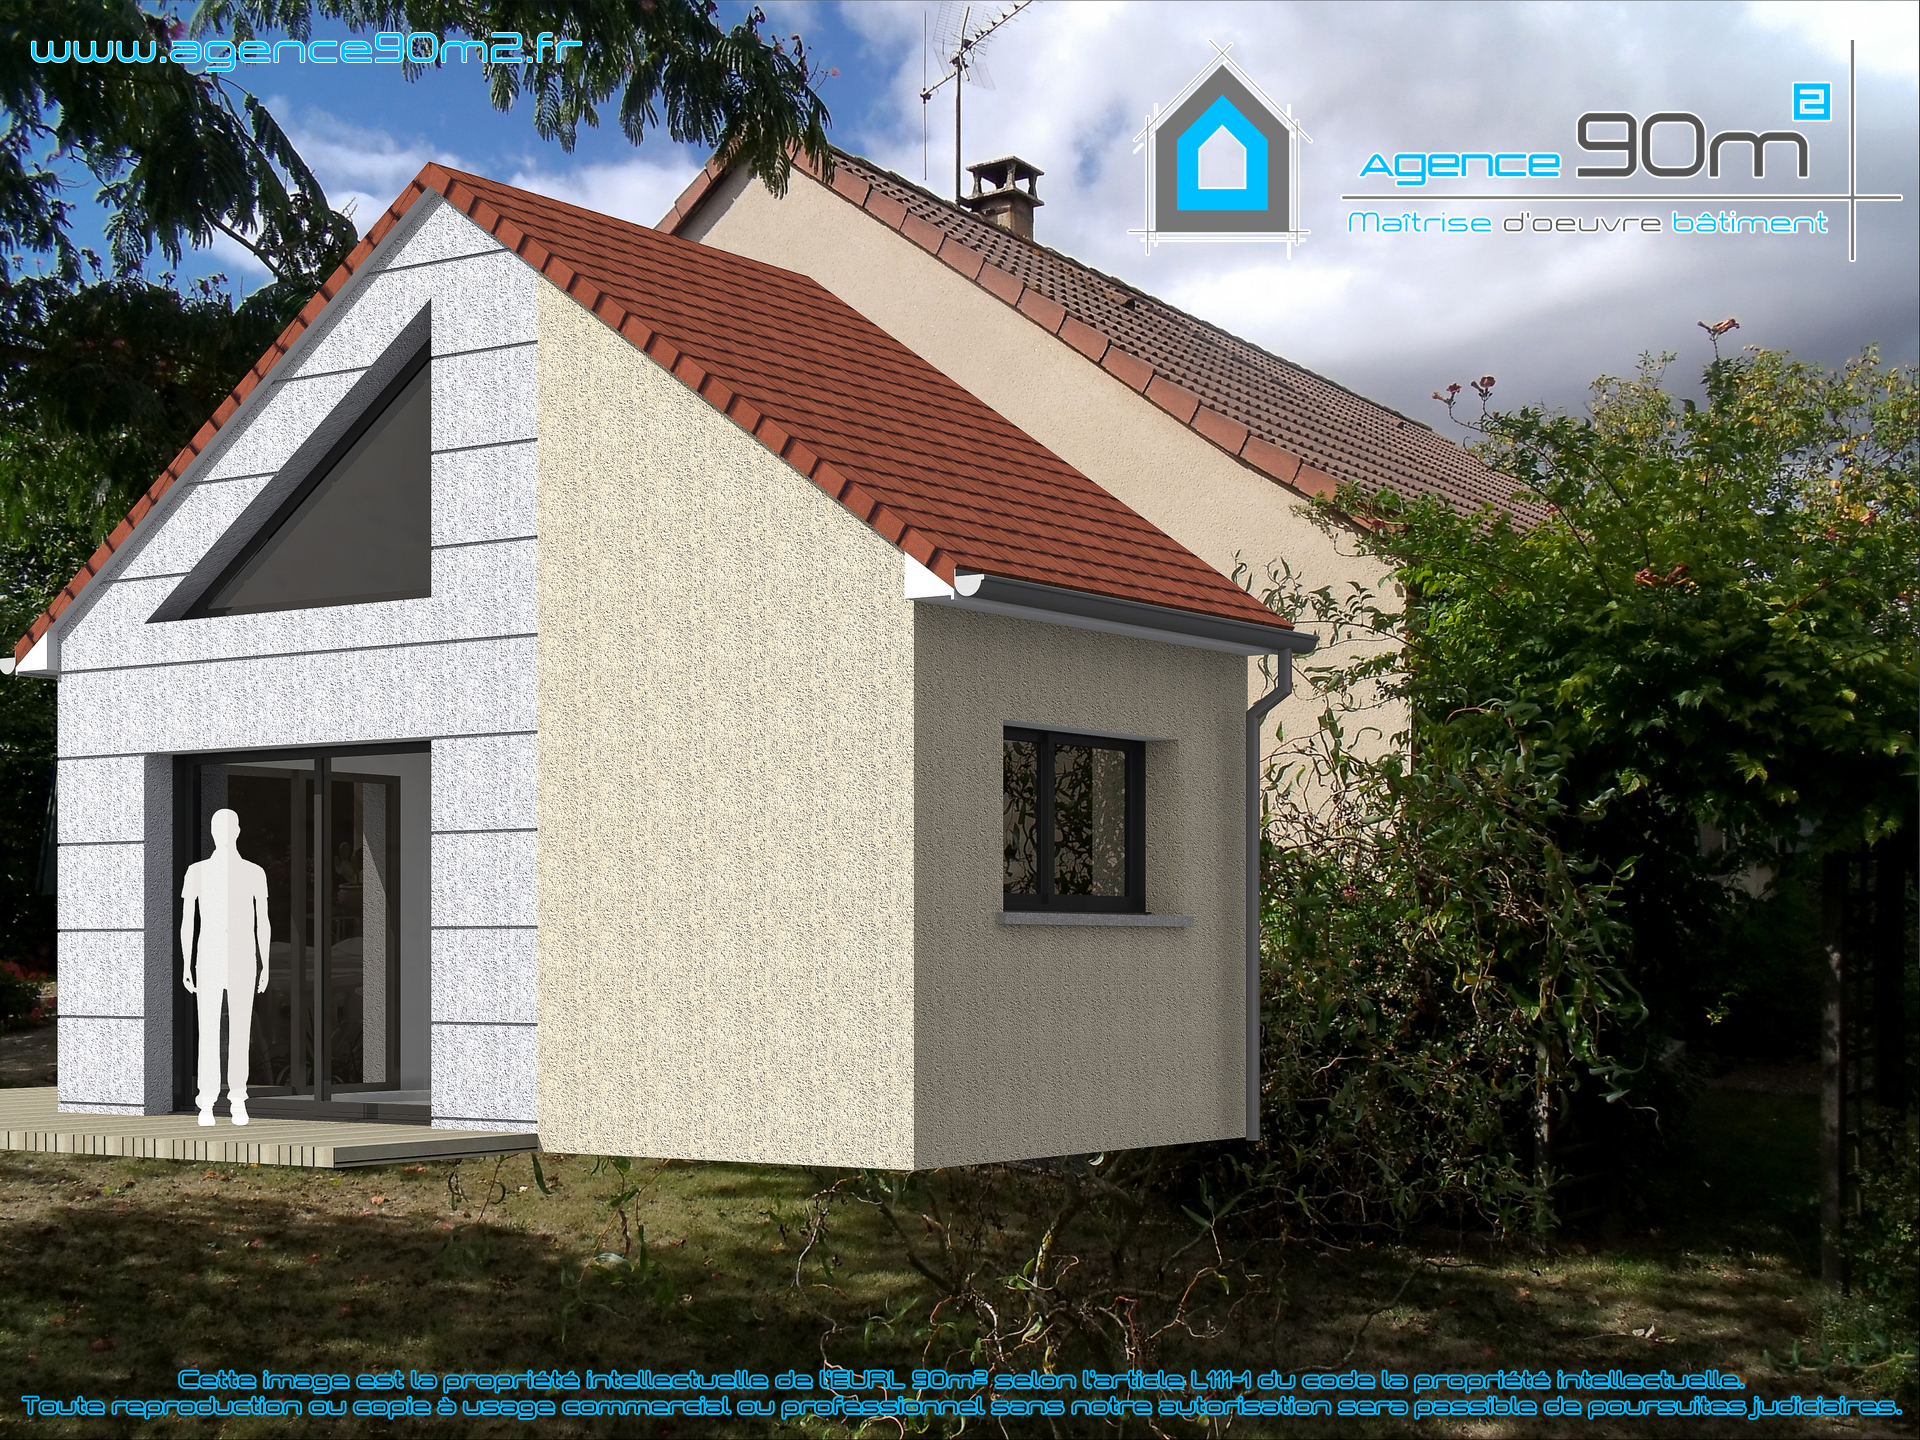 Agence 90m2 projet solesmes 72 for Projet extension